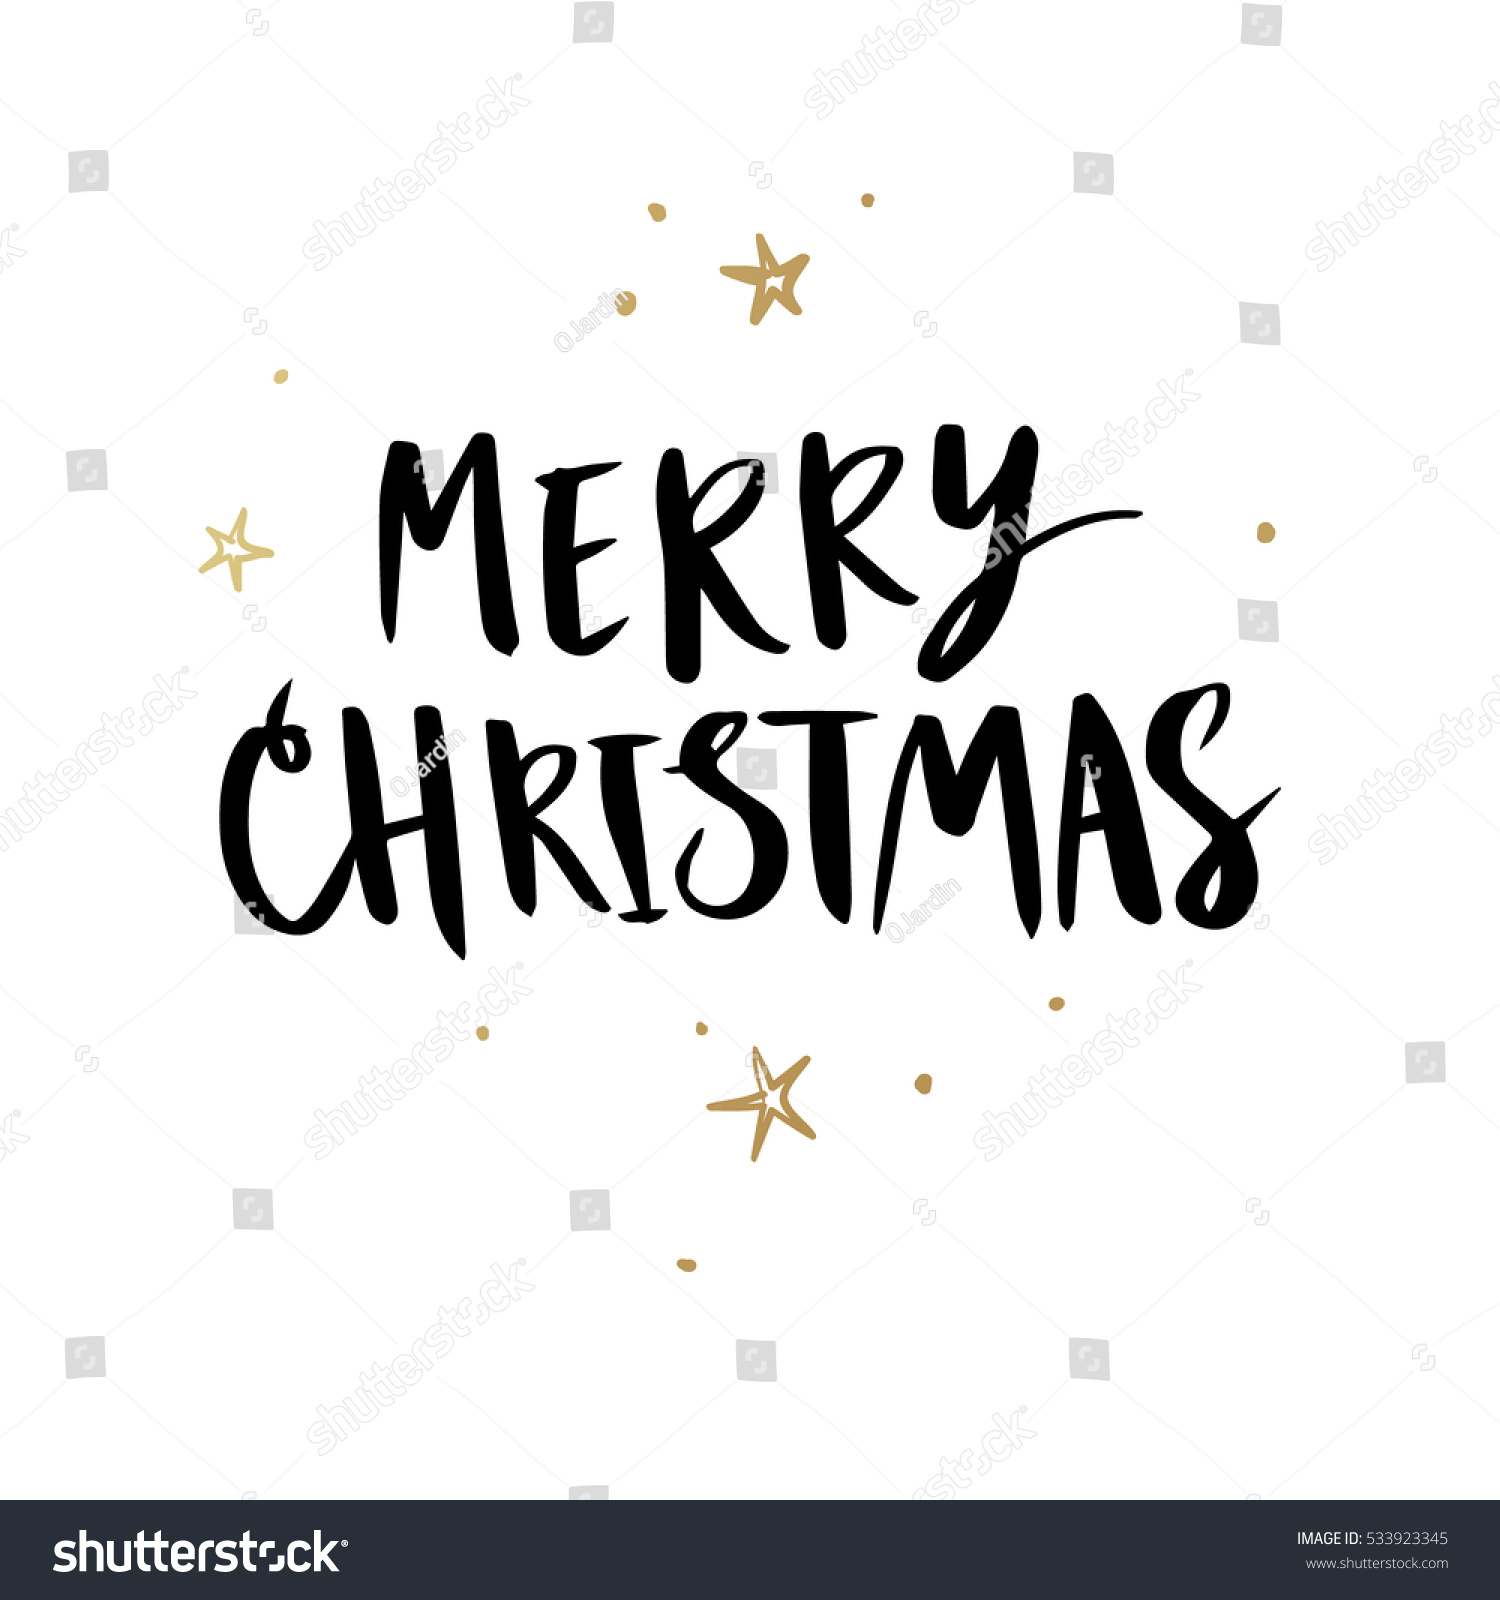 Merry Christmas Lettering Stars On White Stock Vector. Butterfly Signs Of Stroke. Chalkboard Wall Murals. Legionella Pneumophila Signs. Fancy Lettering. Copper Banners. Classroom Theme Signs. Men Signs Of Stroke. Hot Stamping Stickers